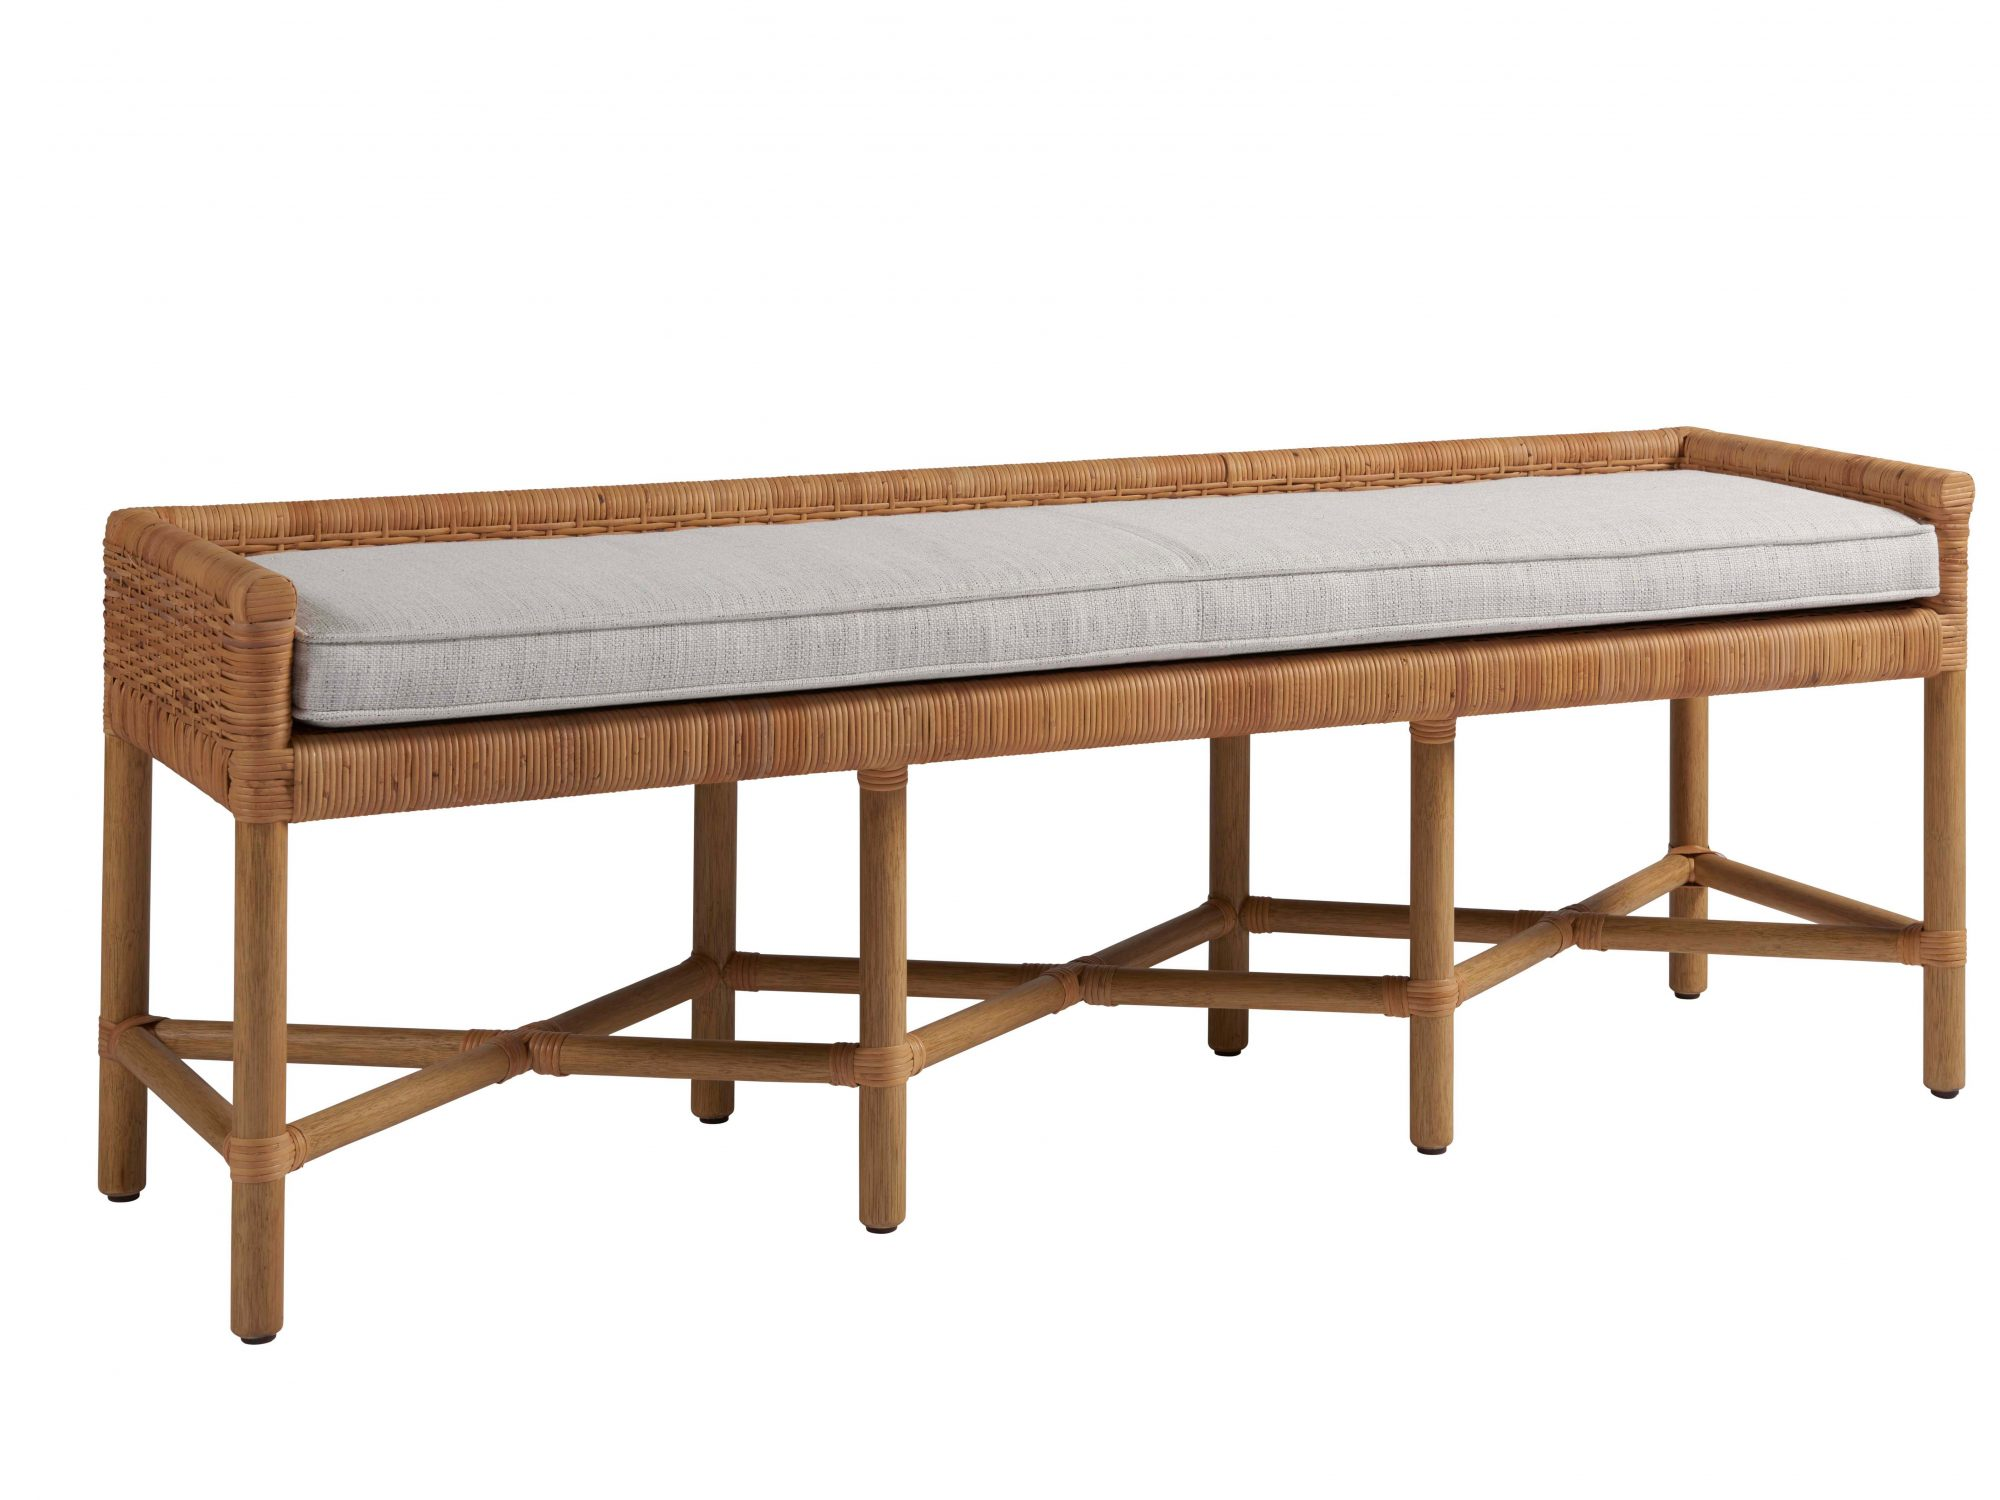 Pull Up Bench from the Coastal Living Furniture Collection